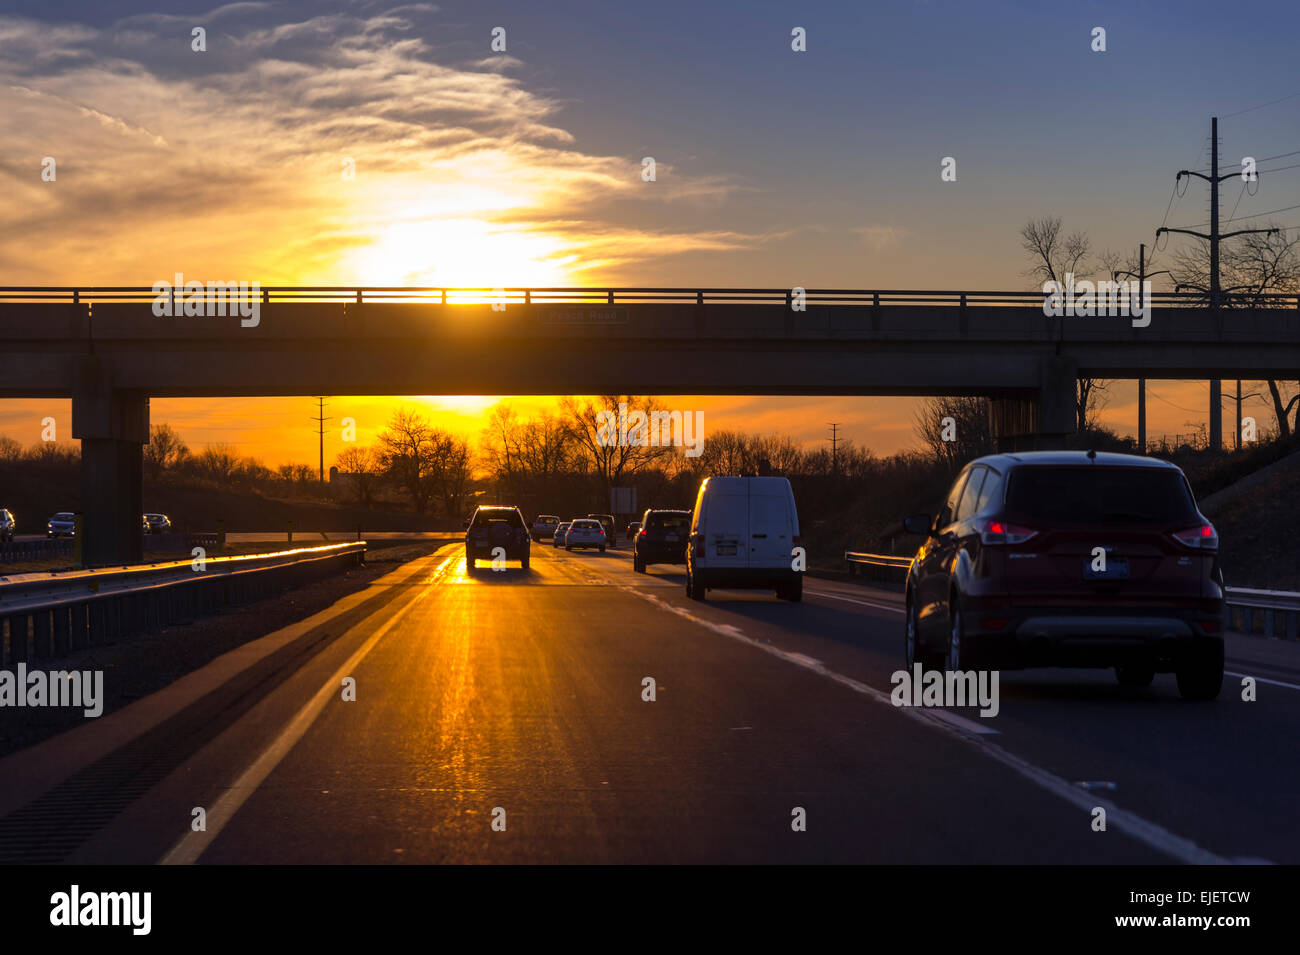 Cars With Sun On Highway During Rush Hour Commute, Philadelphia, USA - Stock Image